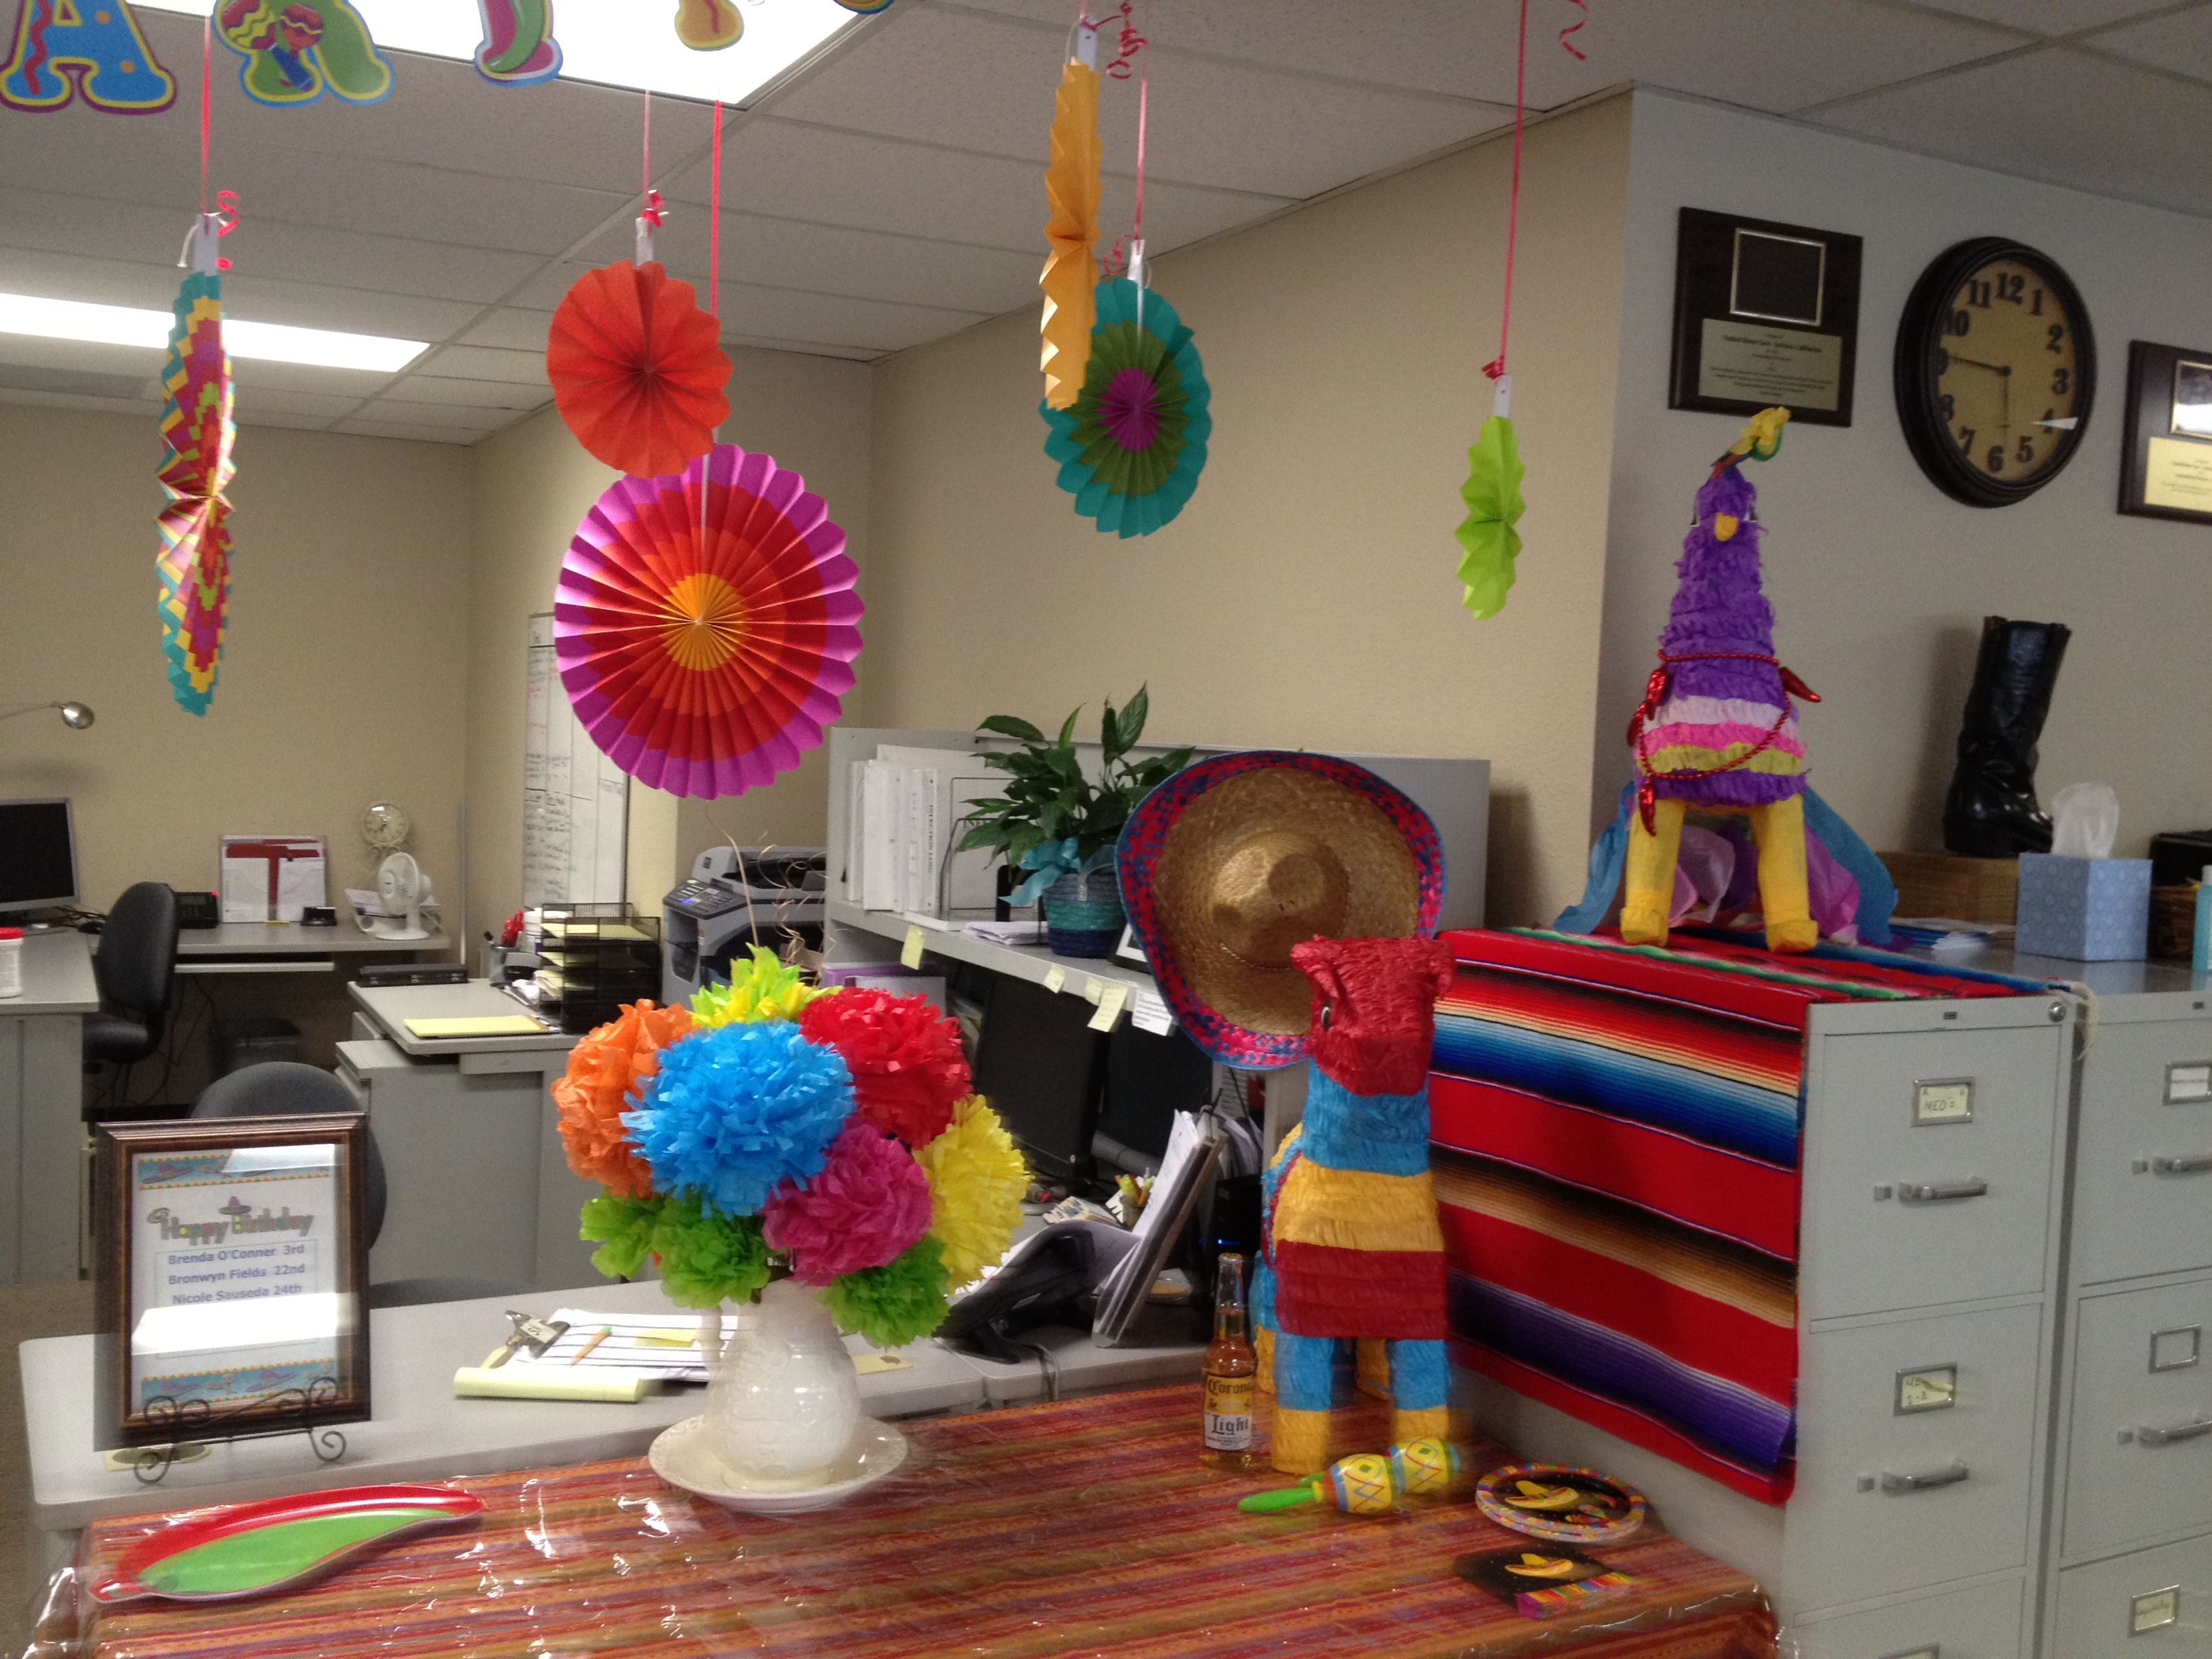 Cinco de Mayo office potluck | My decorations | Pinterest ...